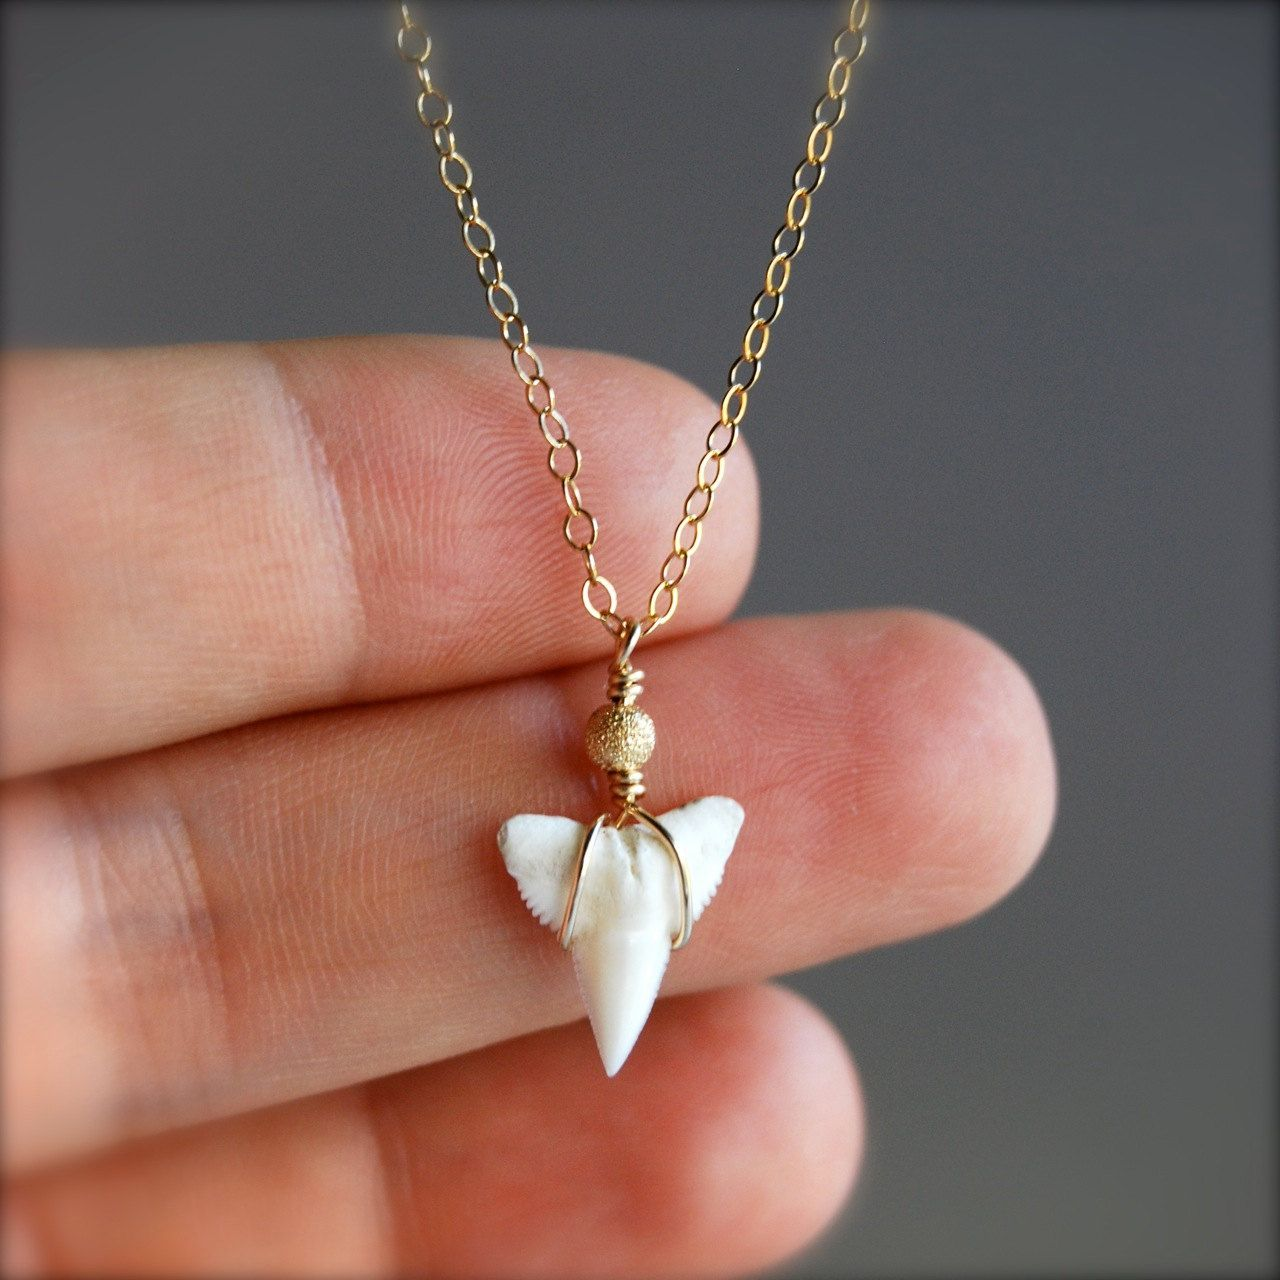 shark tooth necklace pendant products apriljuly